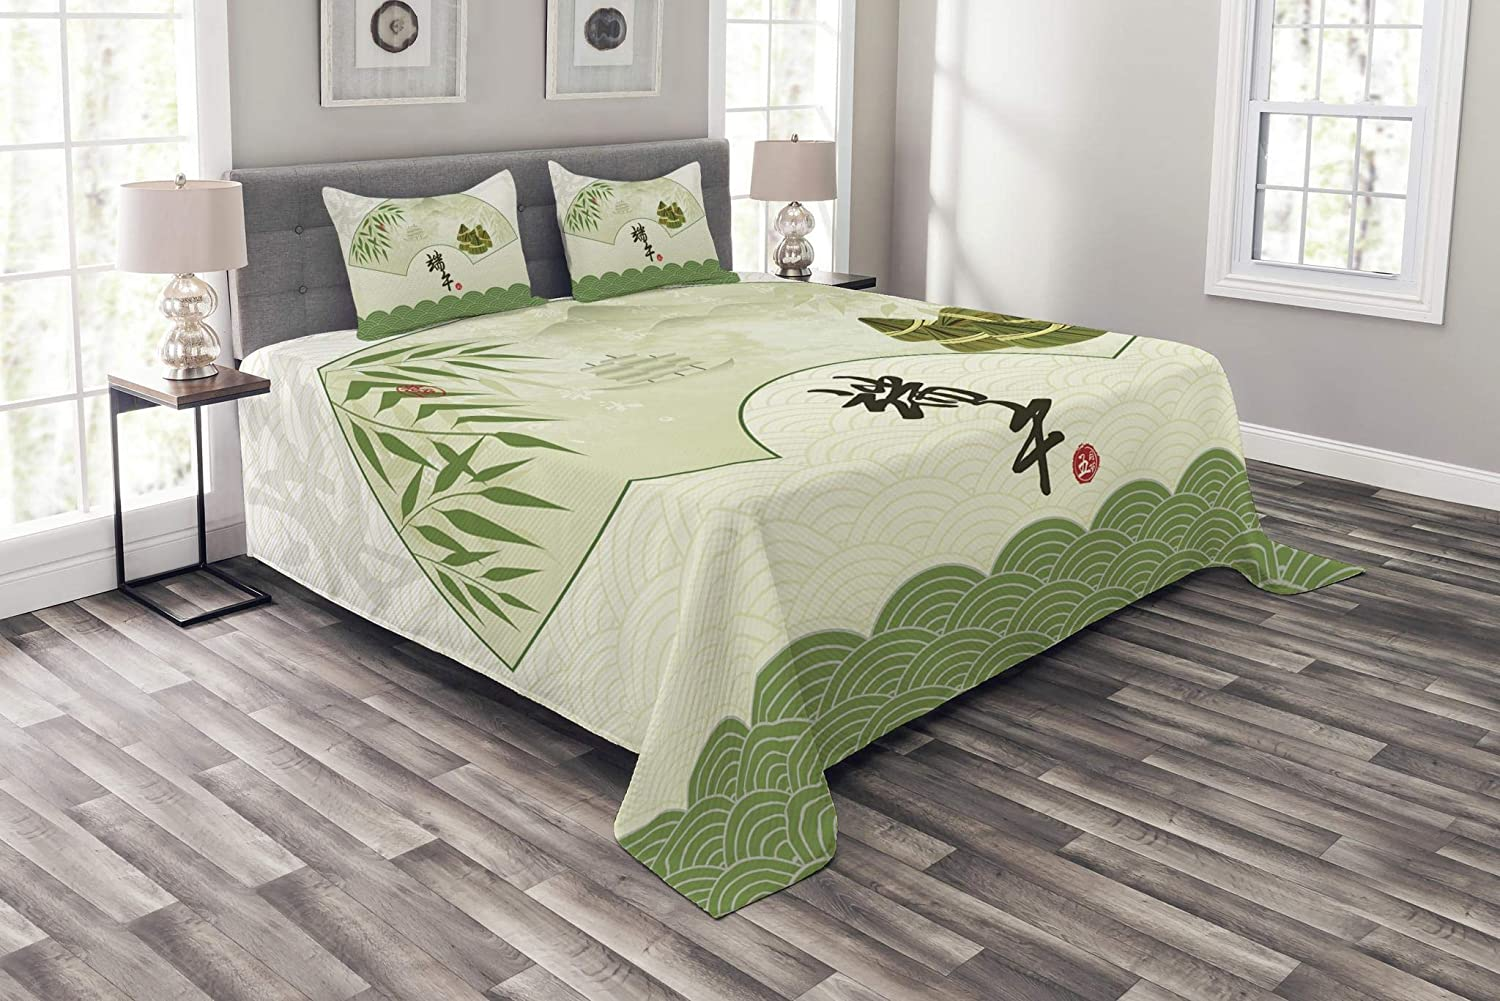 Lunarable Green Oriental Bedspread, Chinese Dragon Boat Festival with Abstract Rice Dumpling Bamboo Background, Decorative Quilted 3 Piece Coverlet Set with 2 Pillow Shams, Queen Size, Green Grey